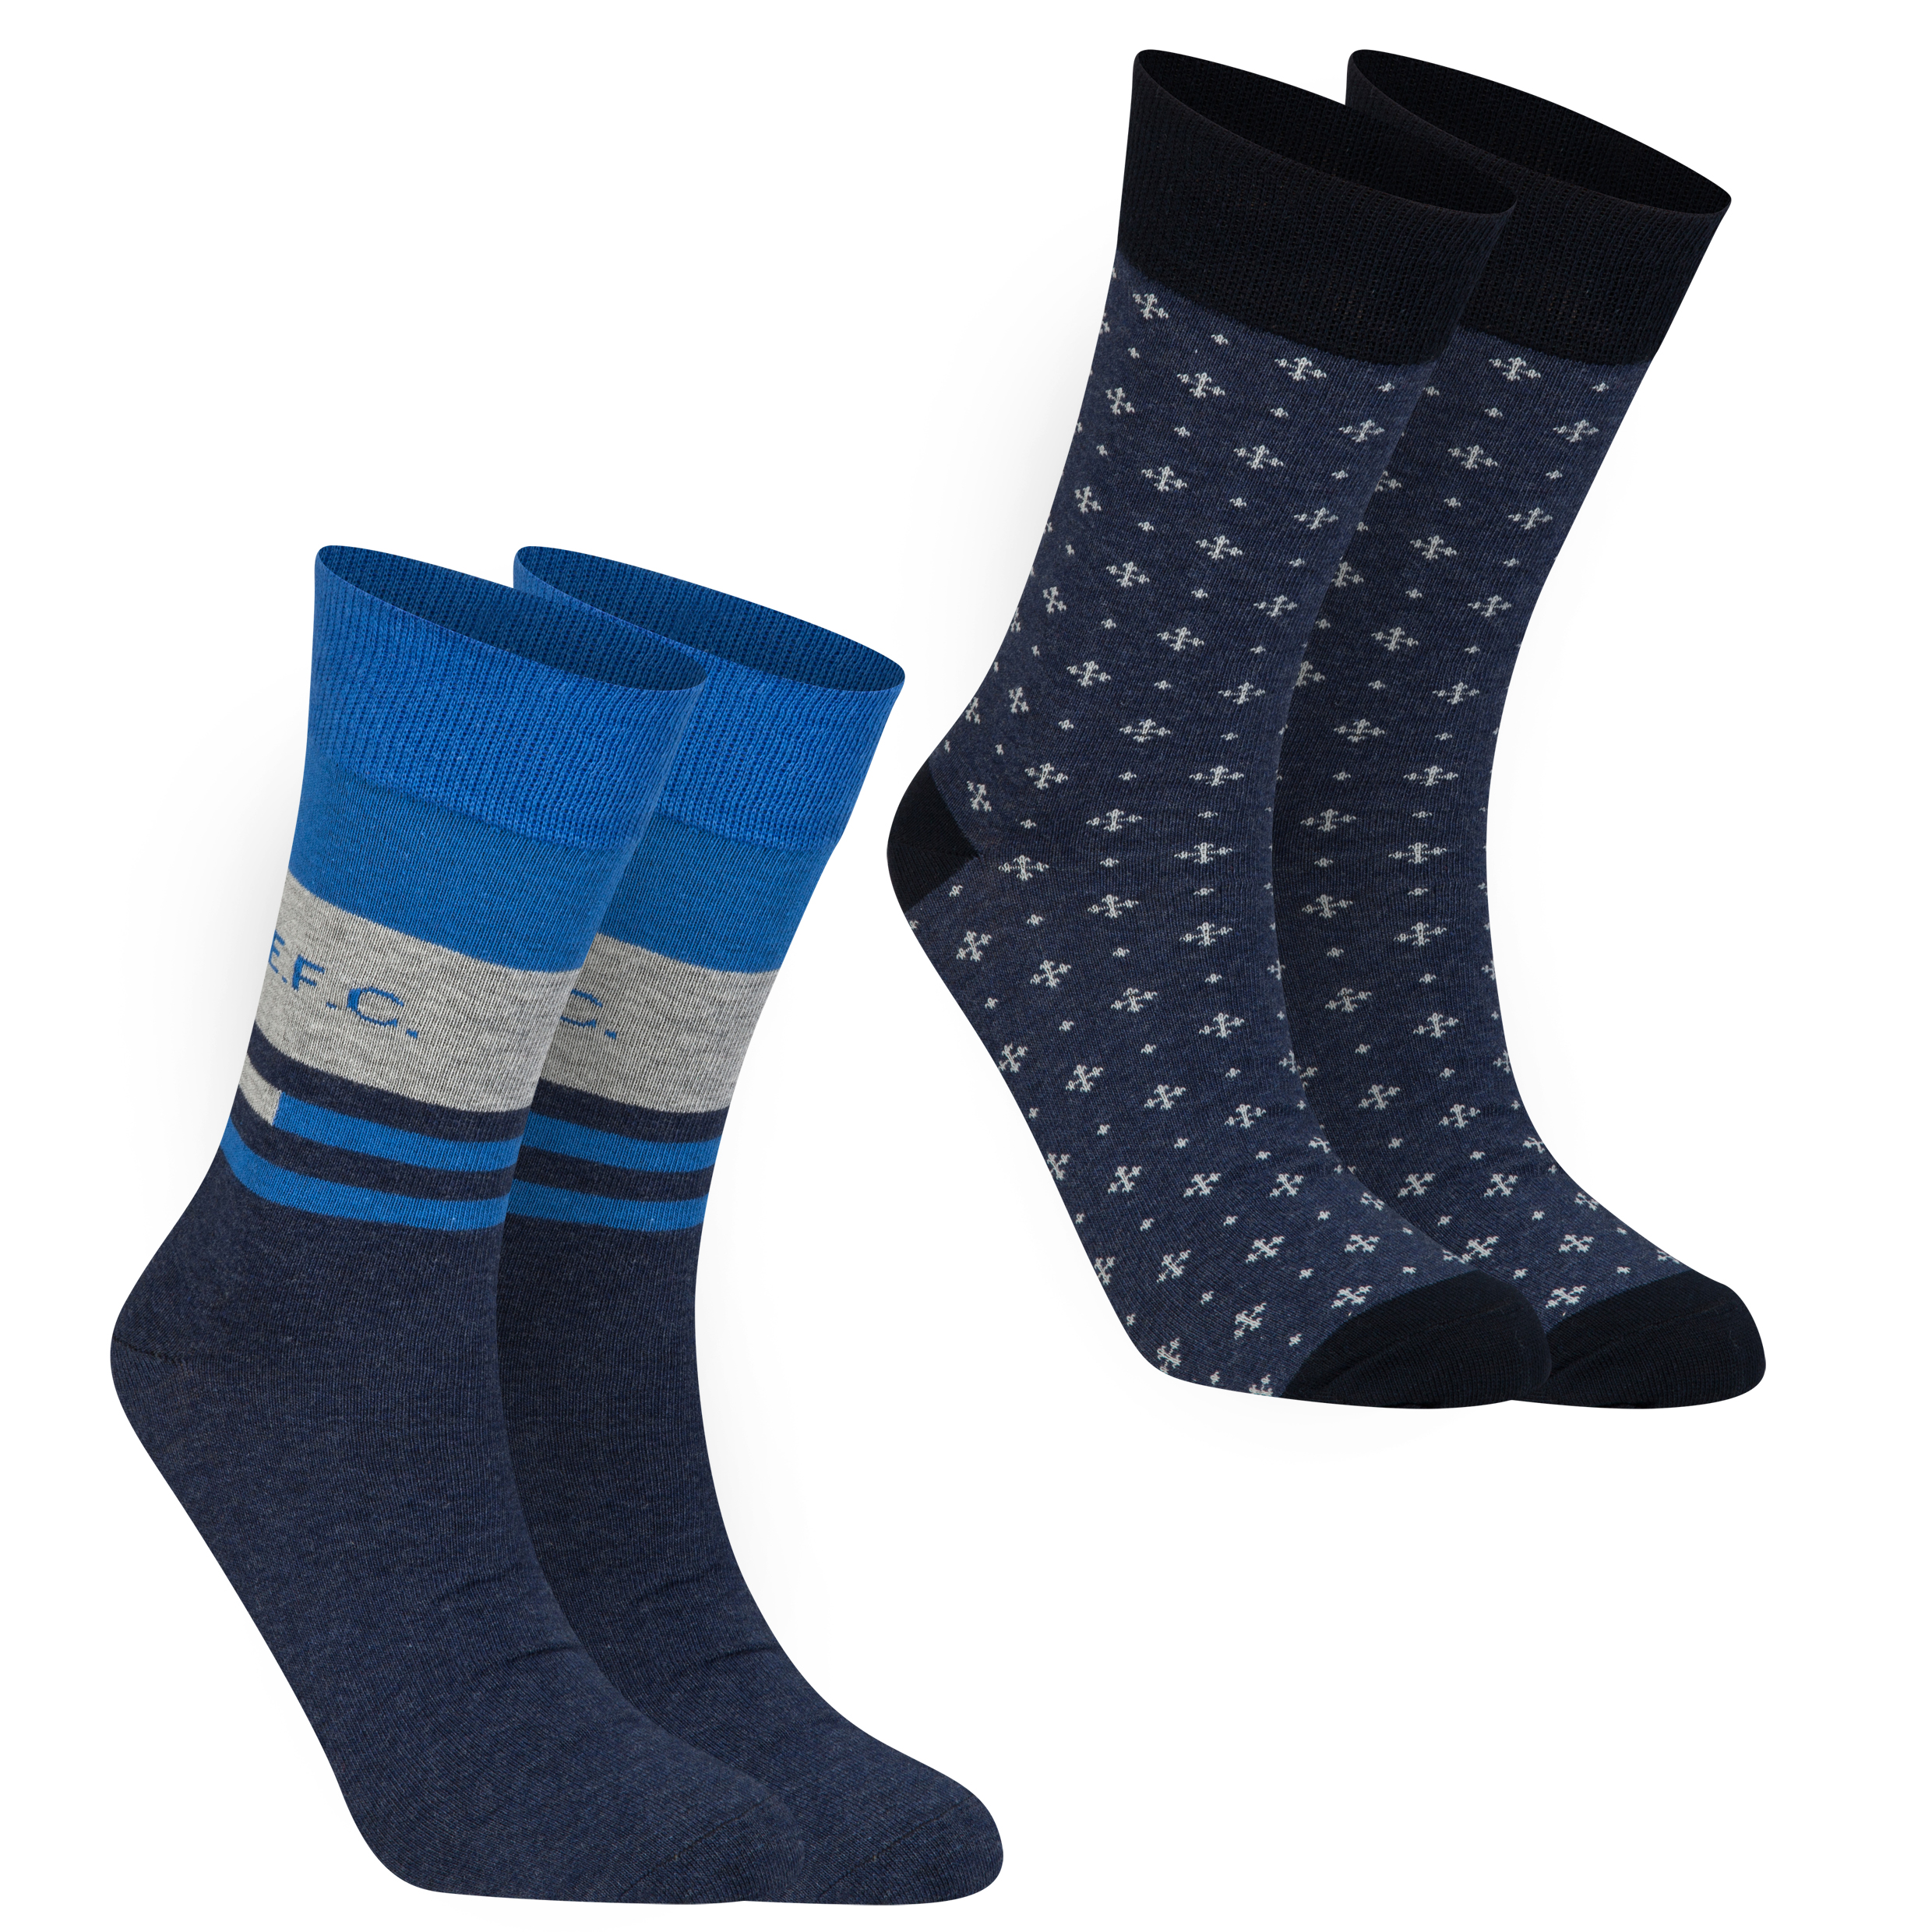 Everton 2PK Socks - Denim Marl/Navy - Mens